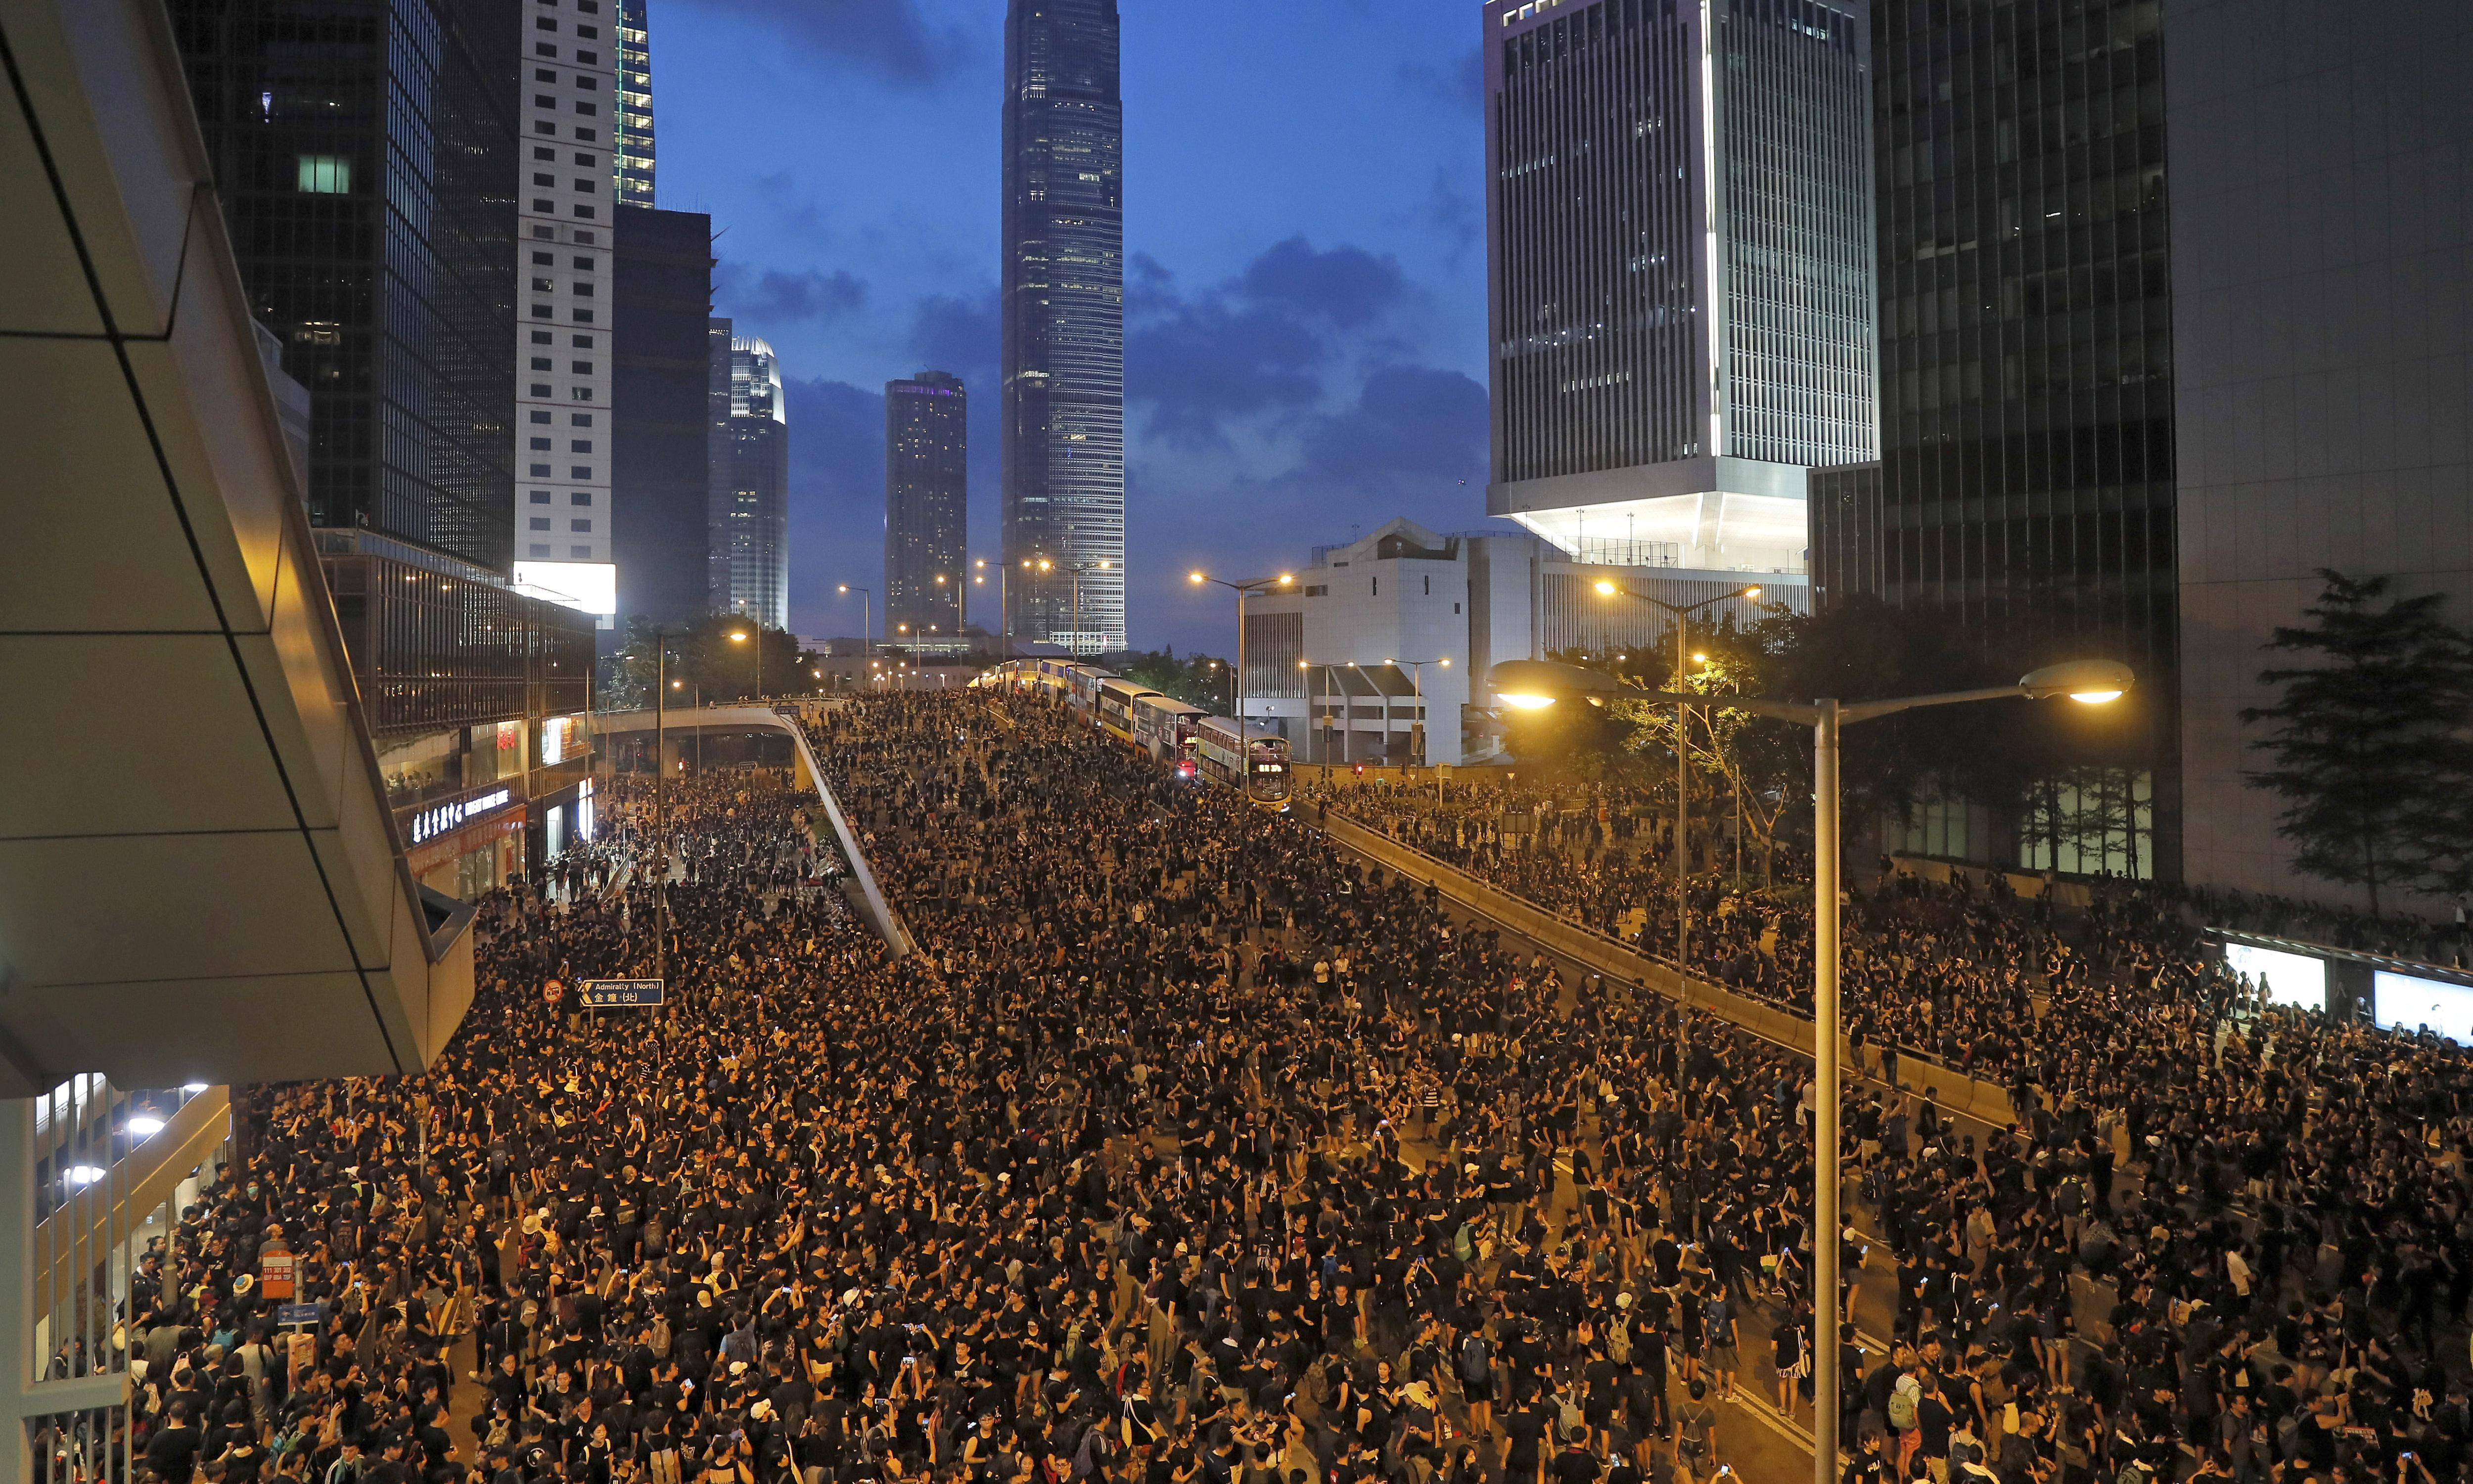 Fears Hong Kong protests could turn violent amid calls to 'escalate action'